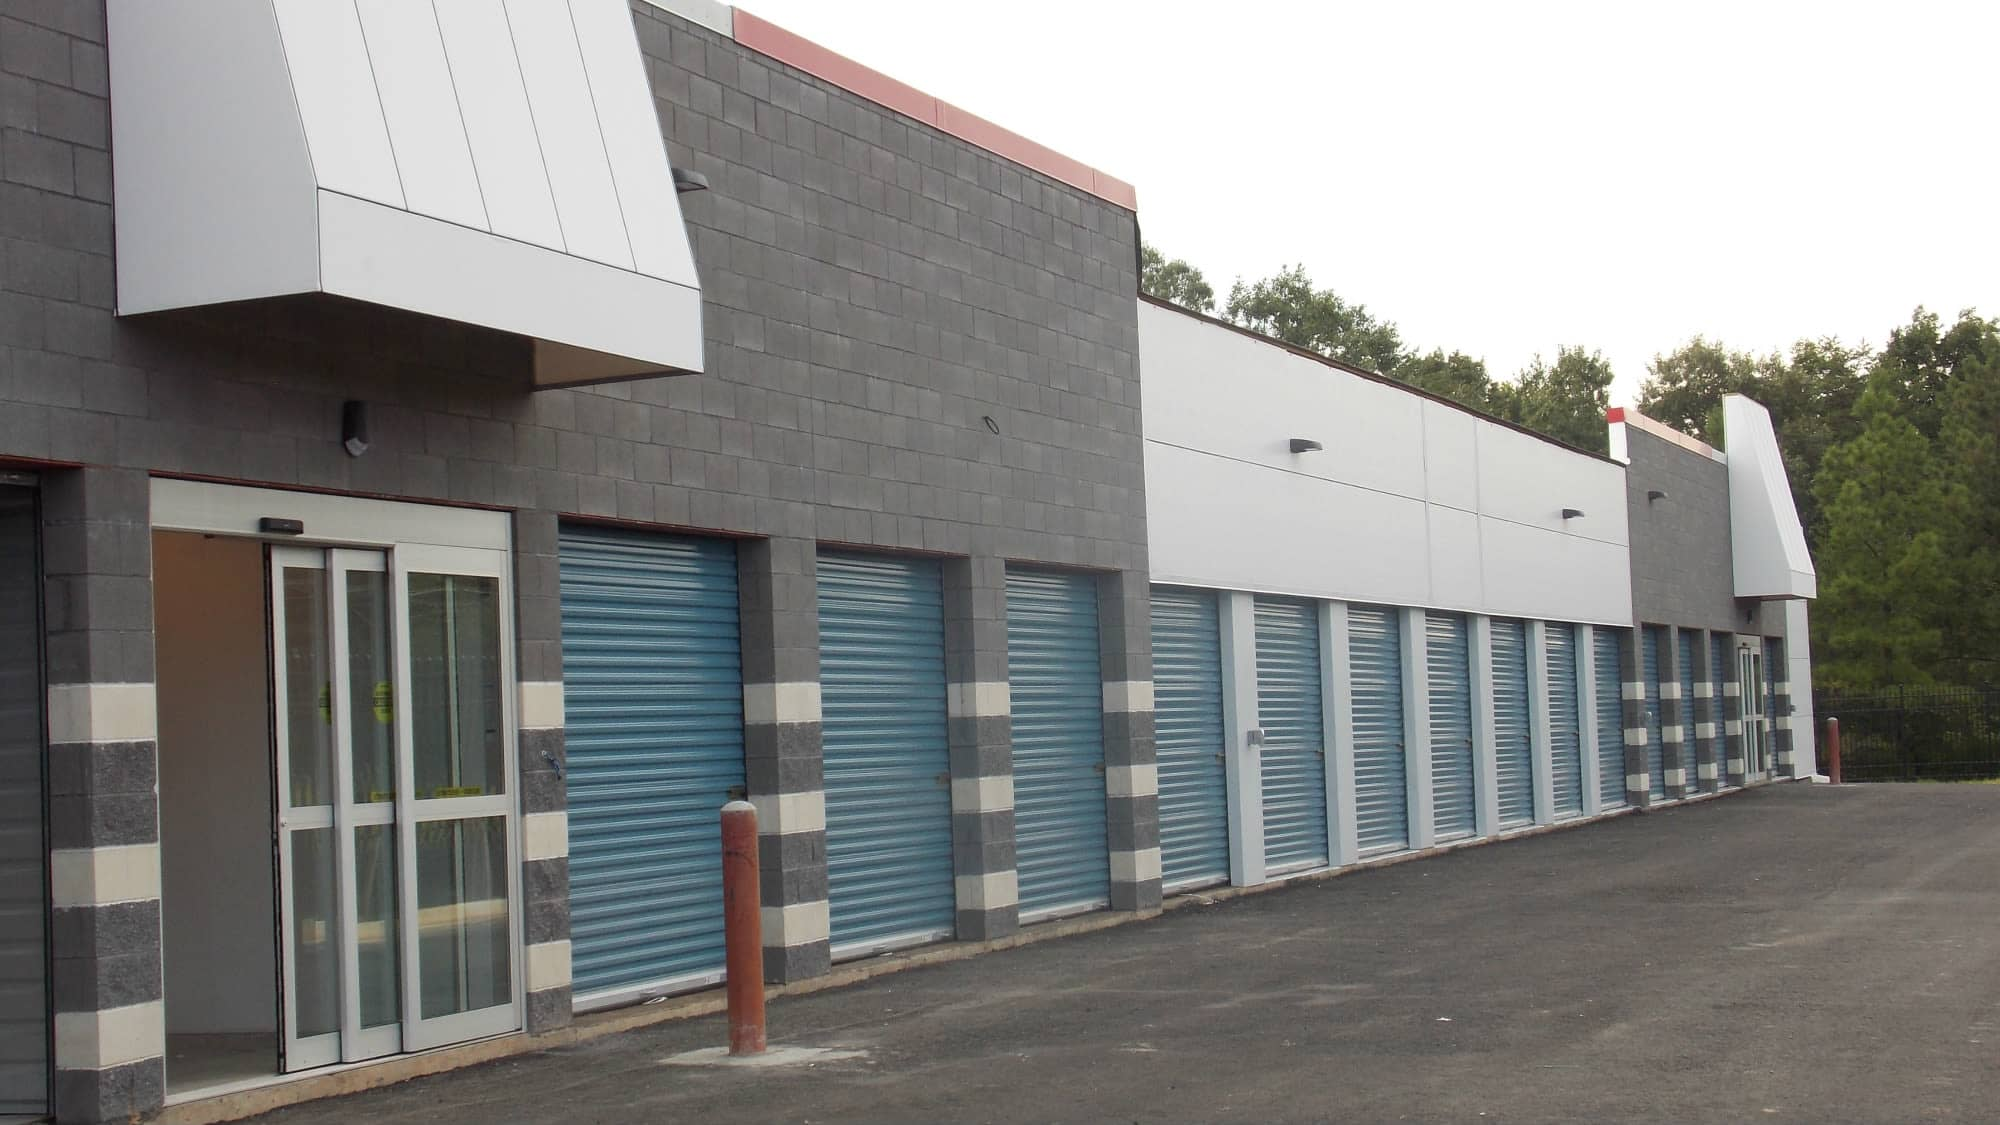 Ground-level units at Self Storage Plus in Fredericksburg, Virginia